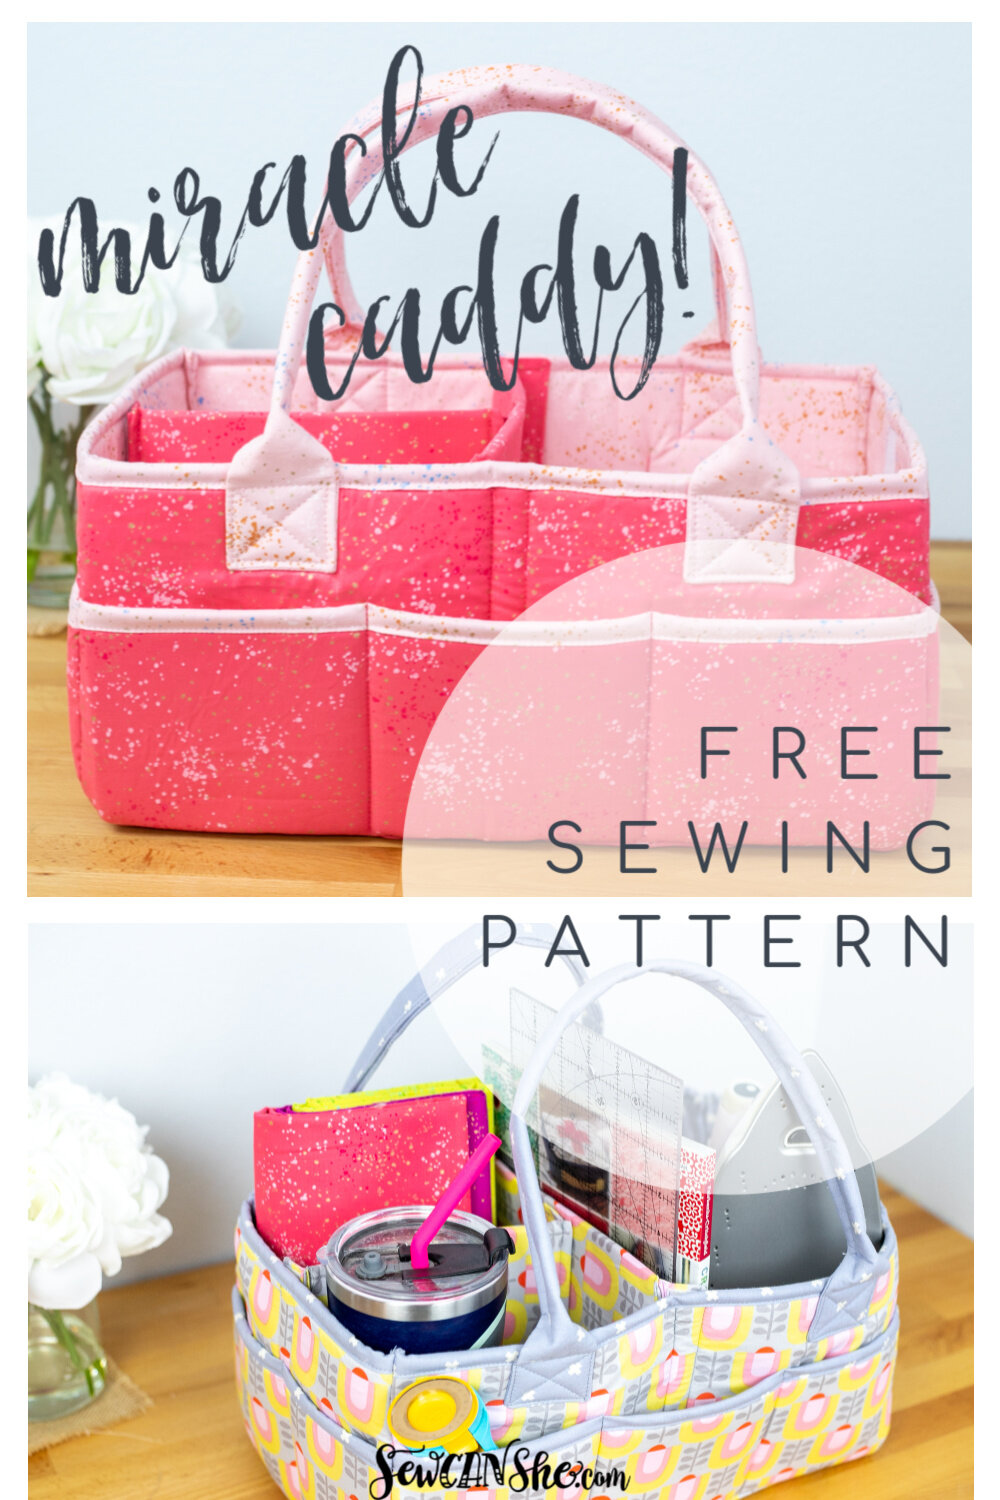 miracle caddy free sewing pattern.jpg